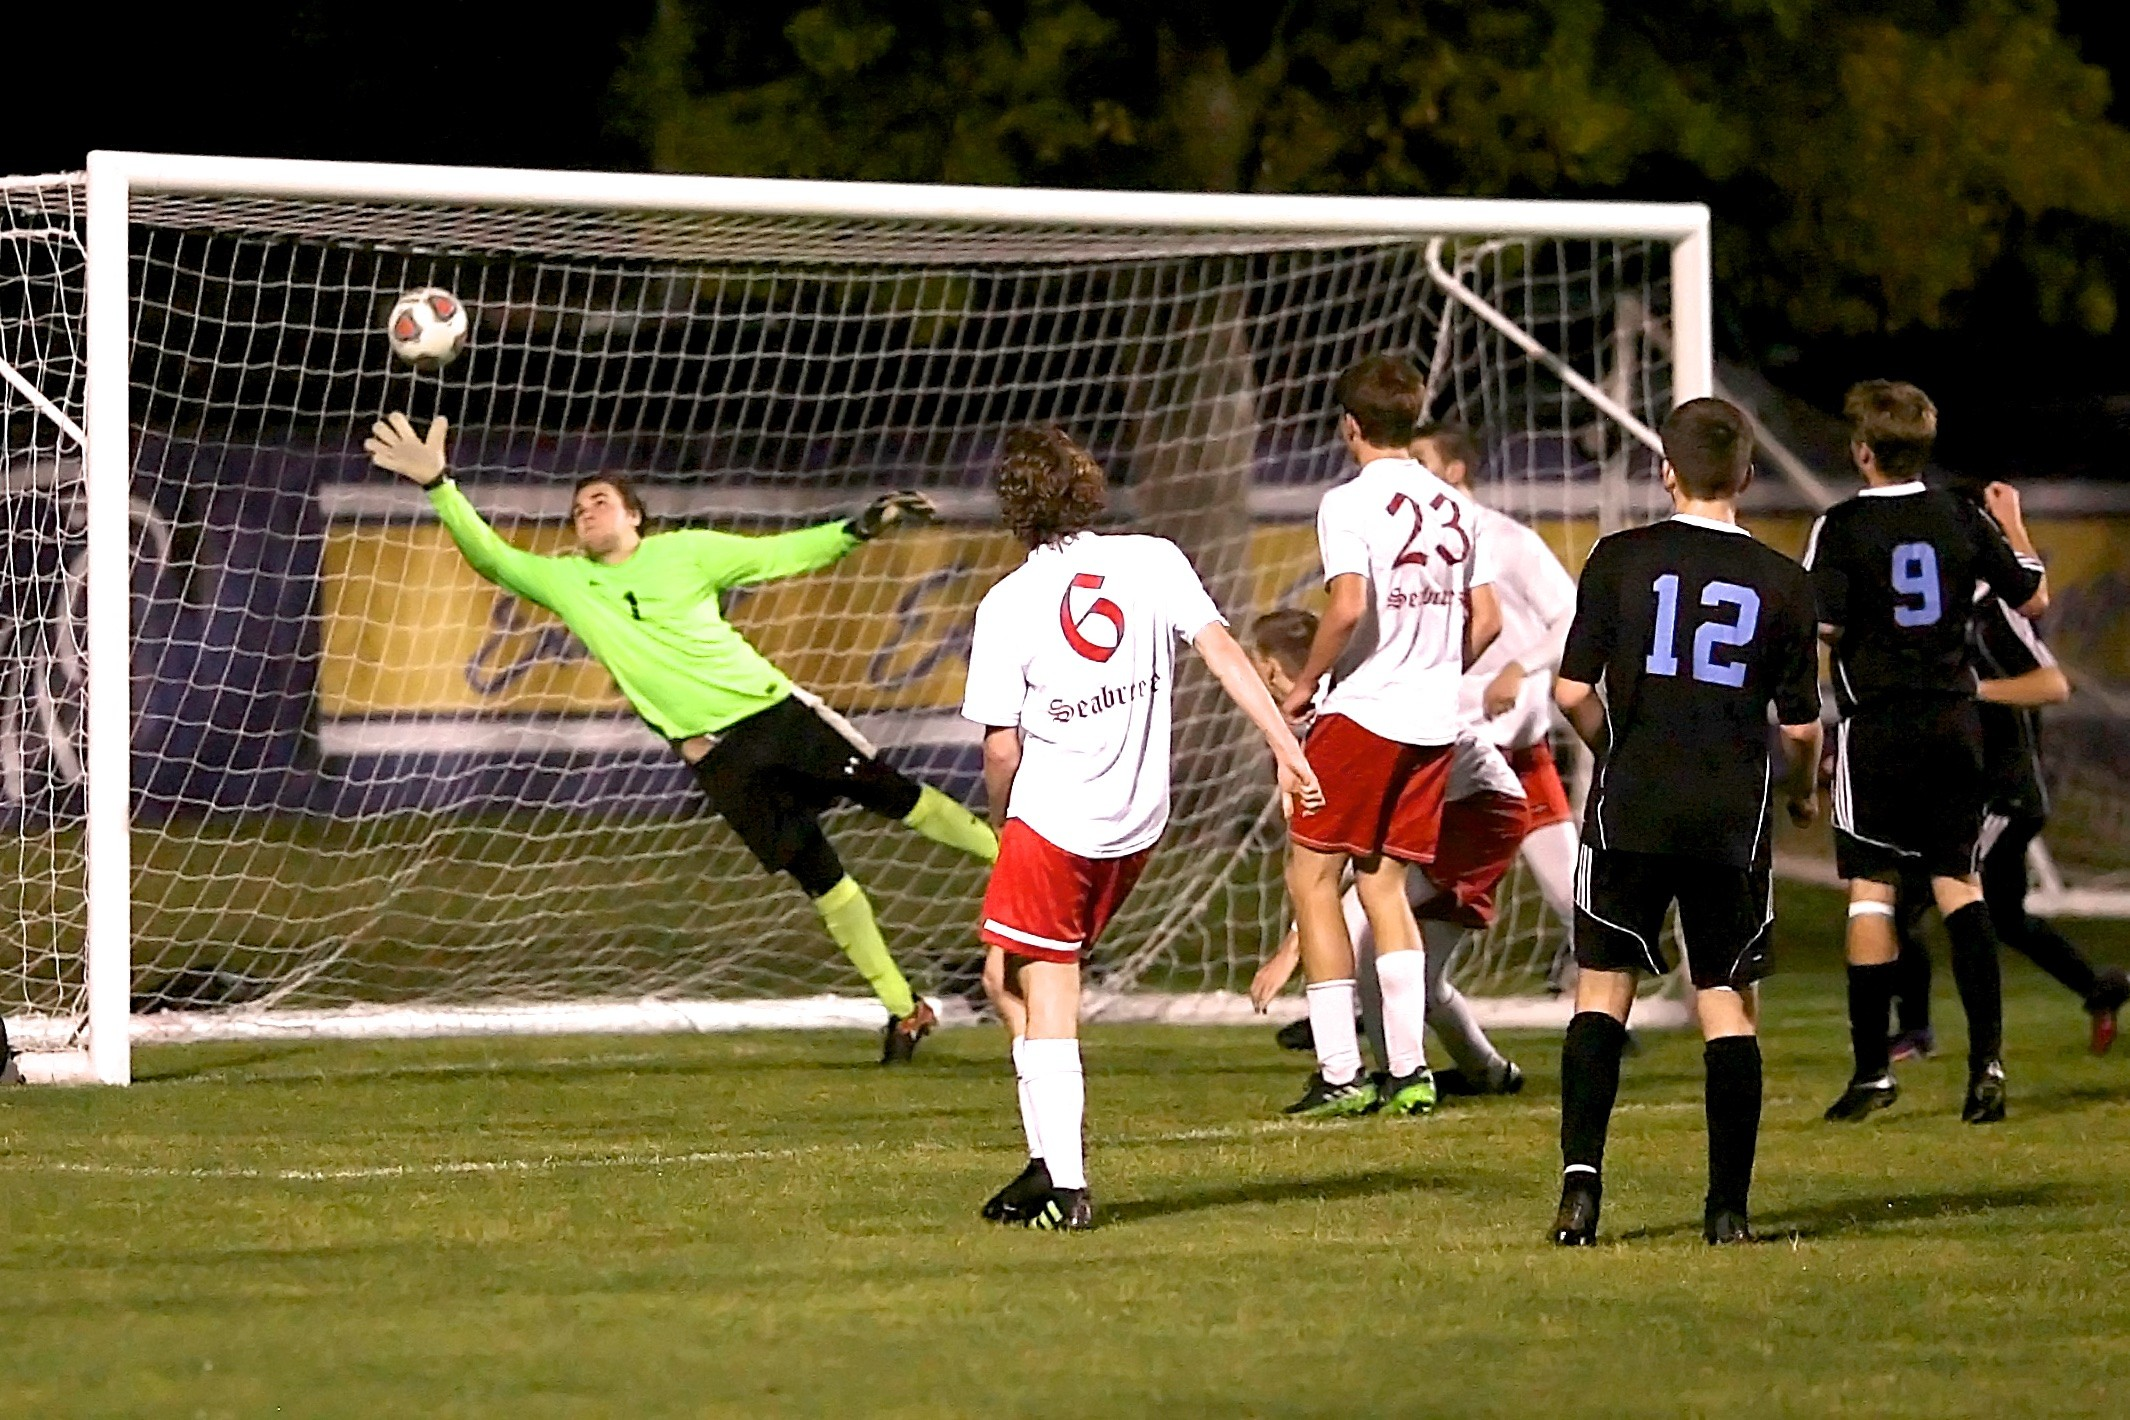 The Seabreeze keeper stretches to make a save on a Ponte Vedra shot.